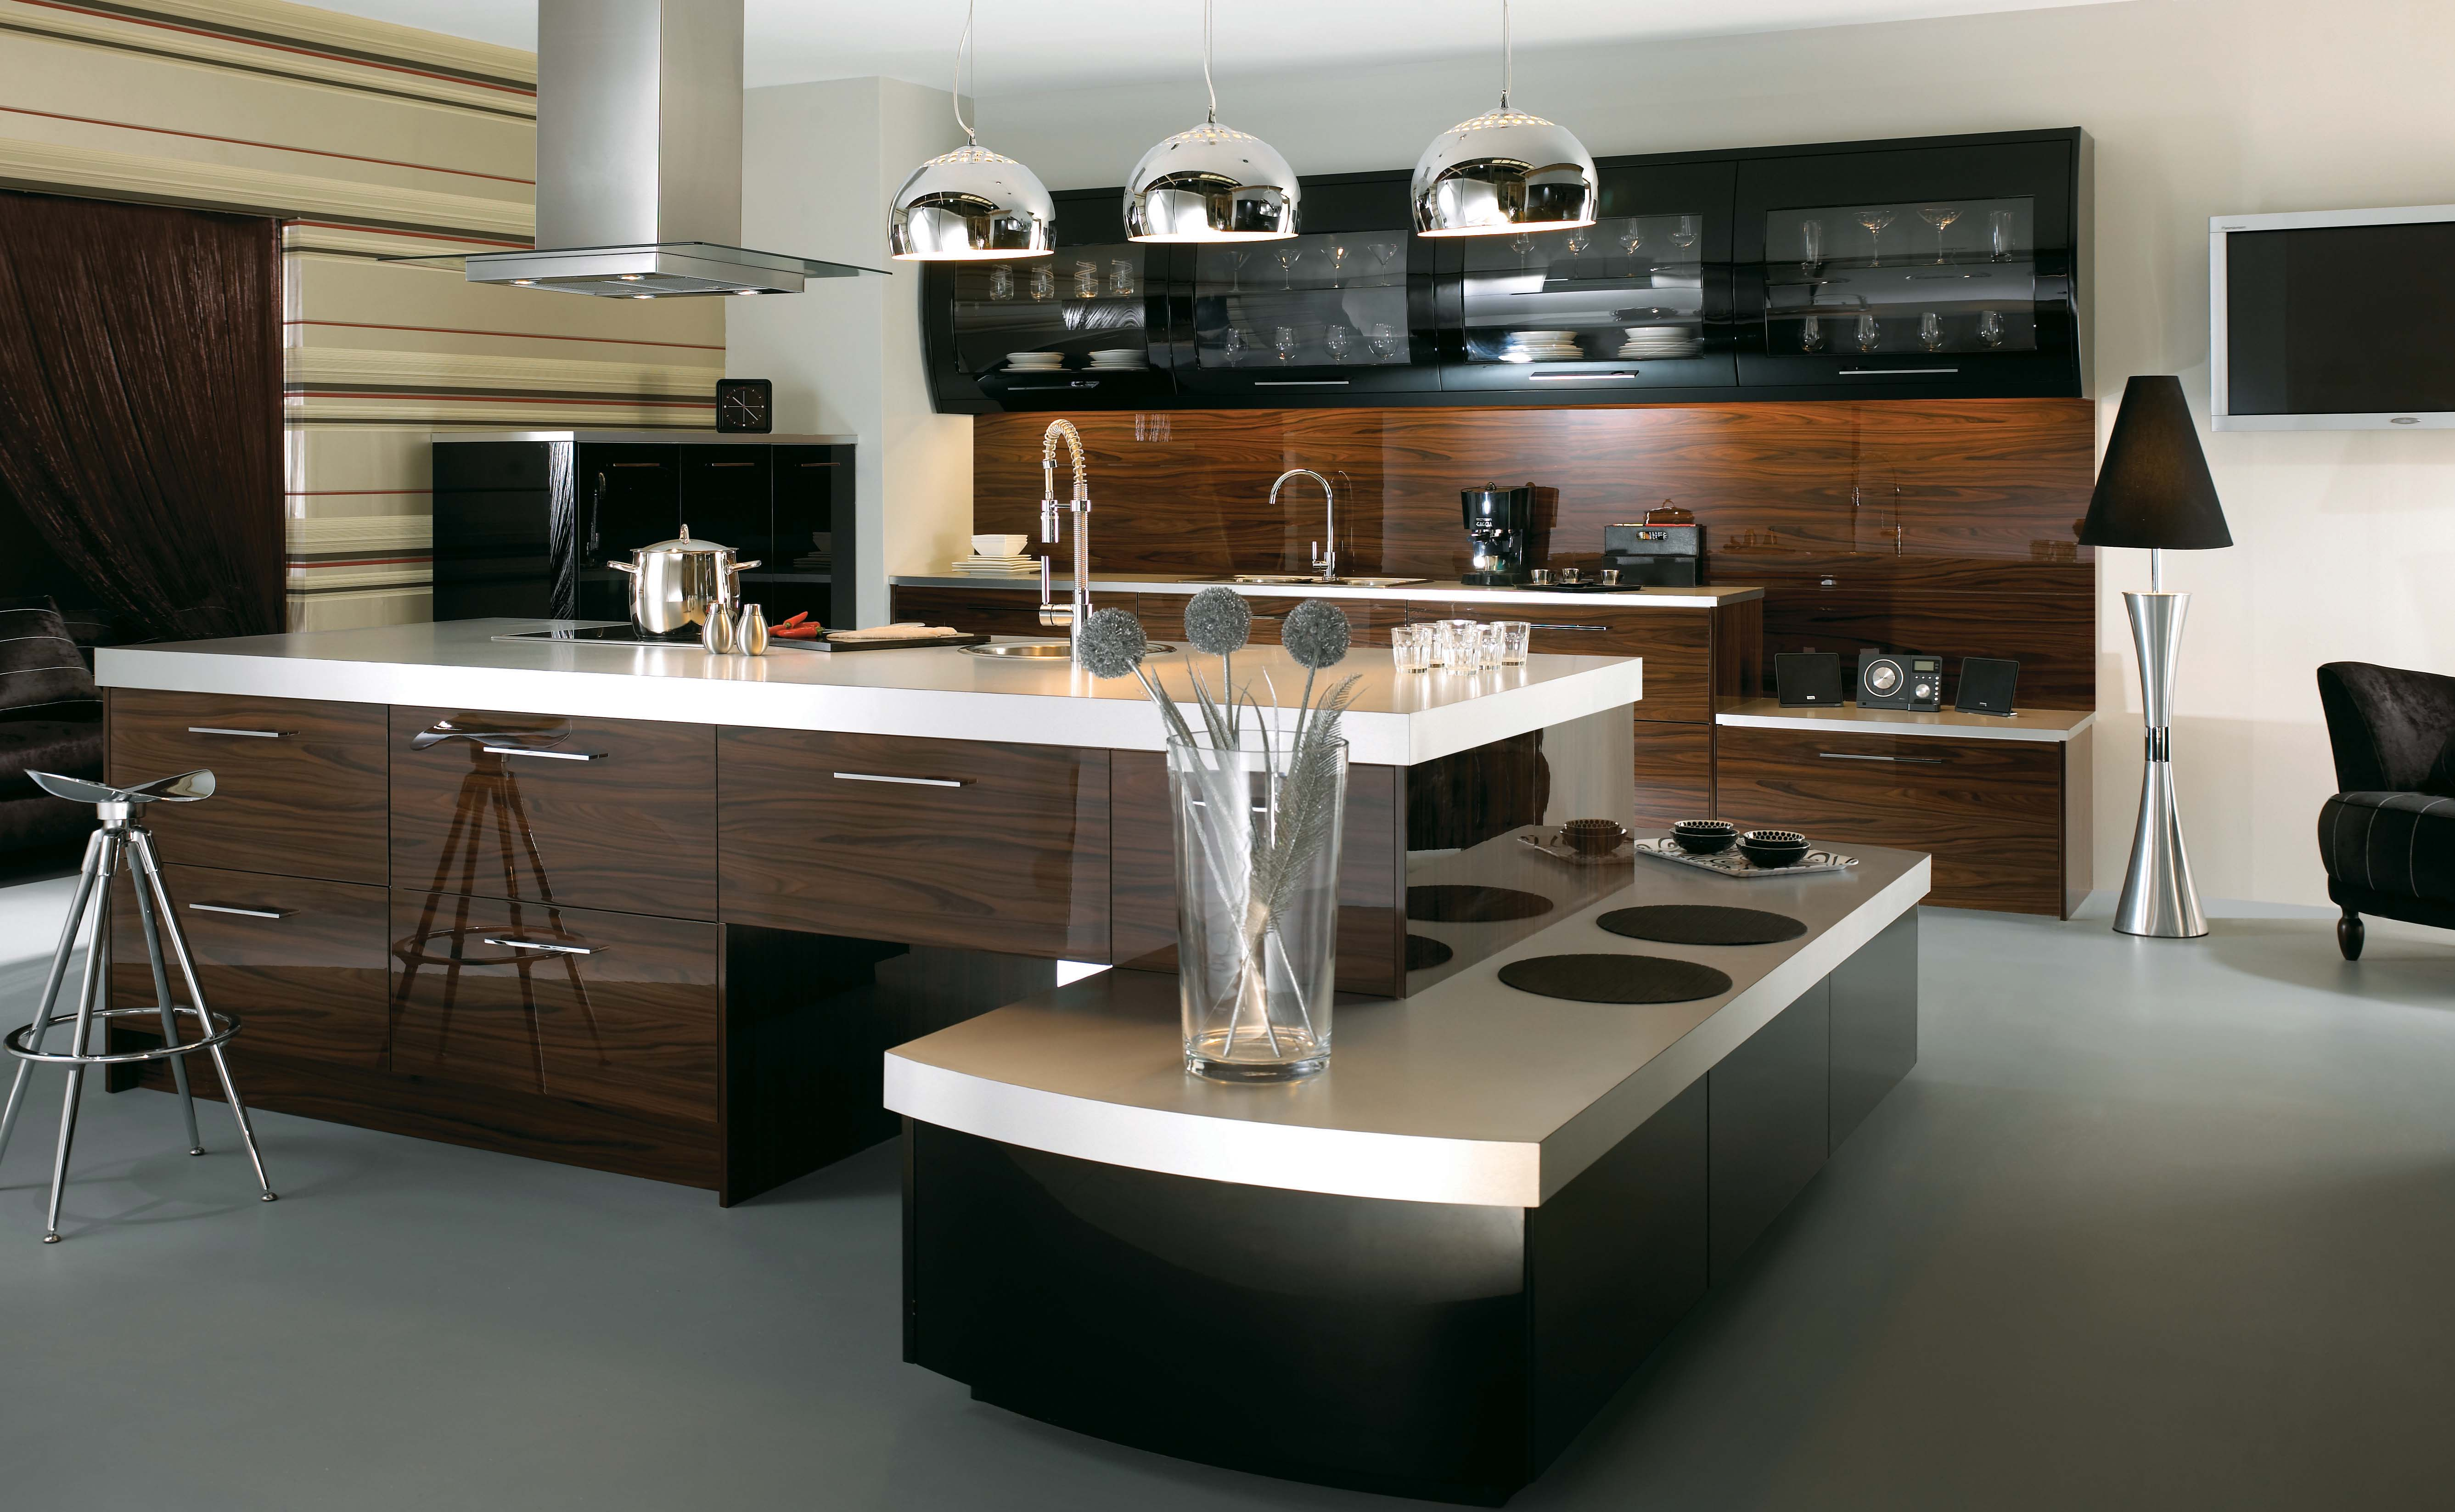 Interior Design Kitchen Interior Design Kitchen Full Size Of With Inspiration Gallery